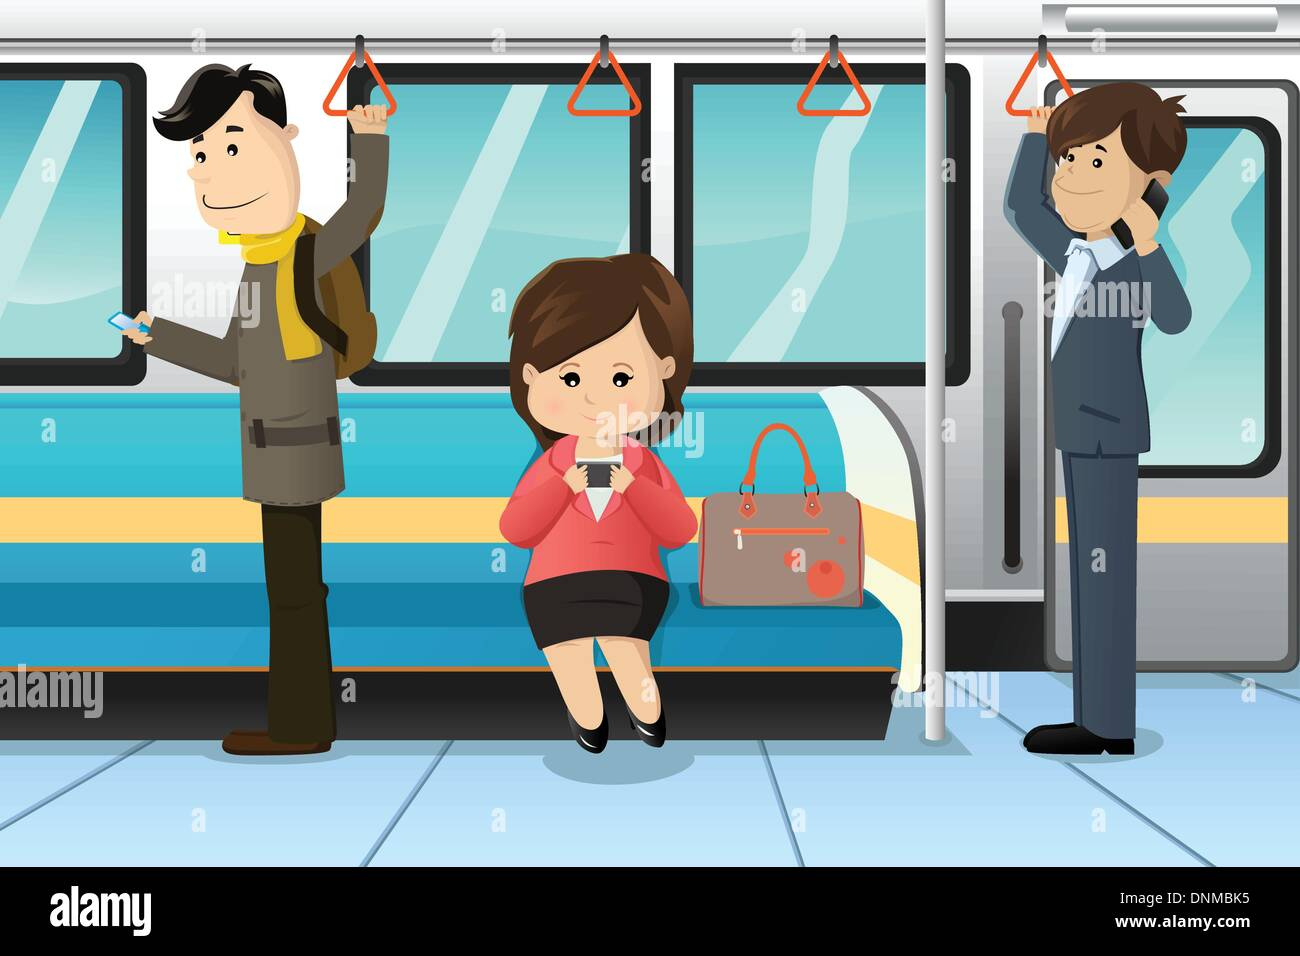 A vector illustration of peoples using cell phones in a train - Stock Image